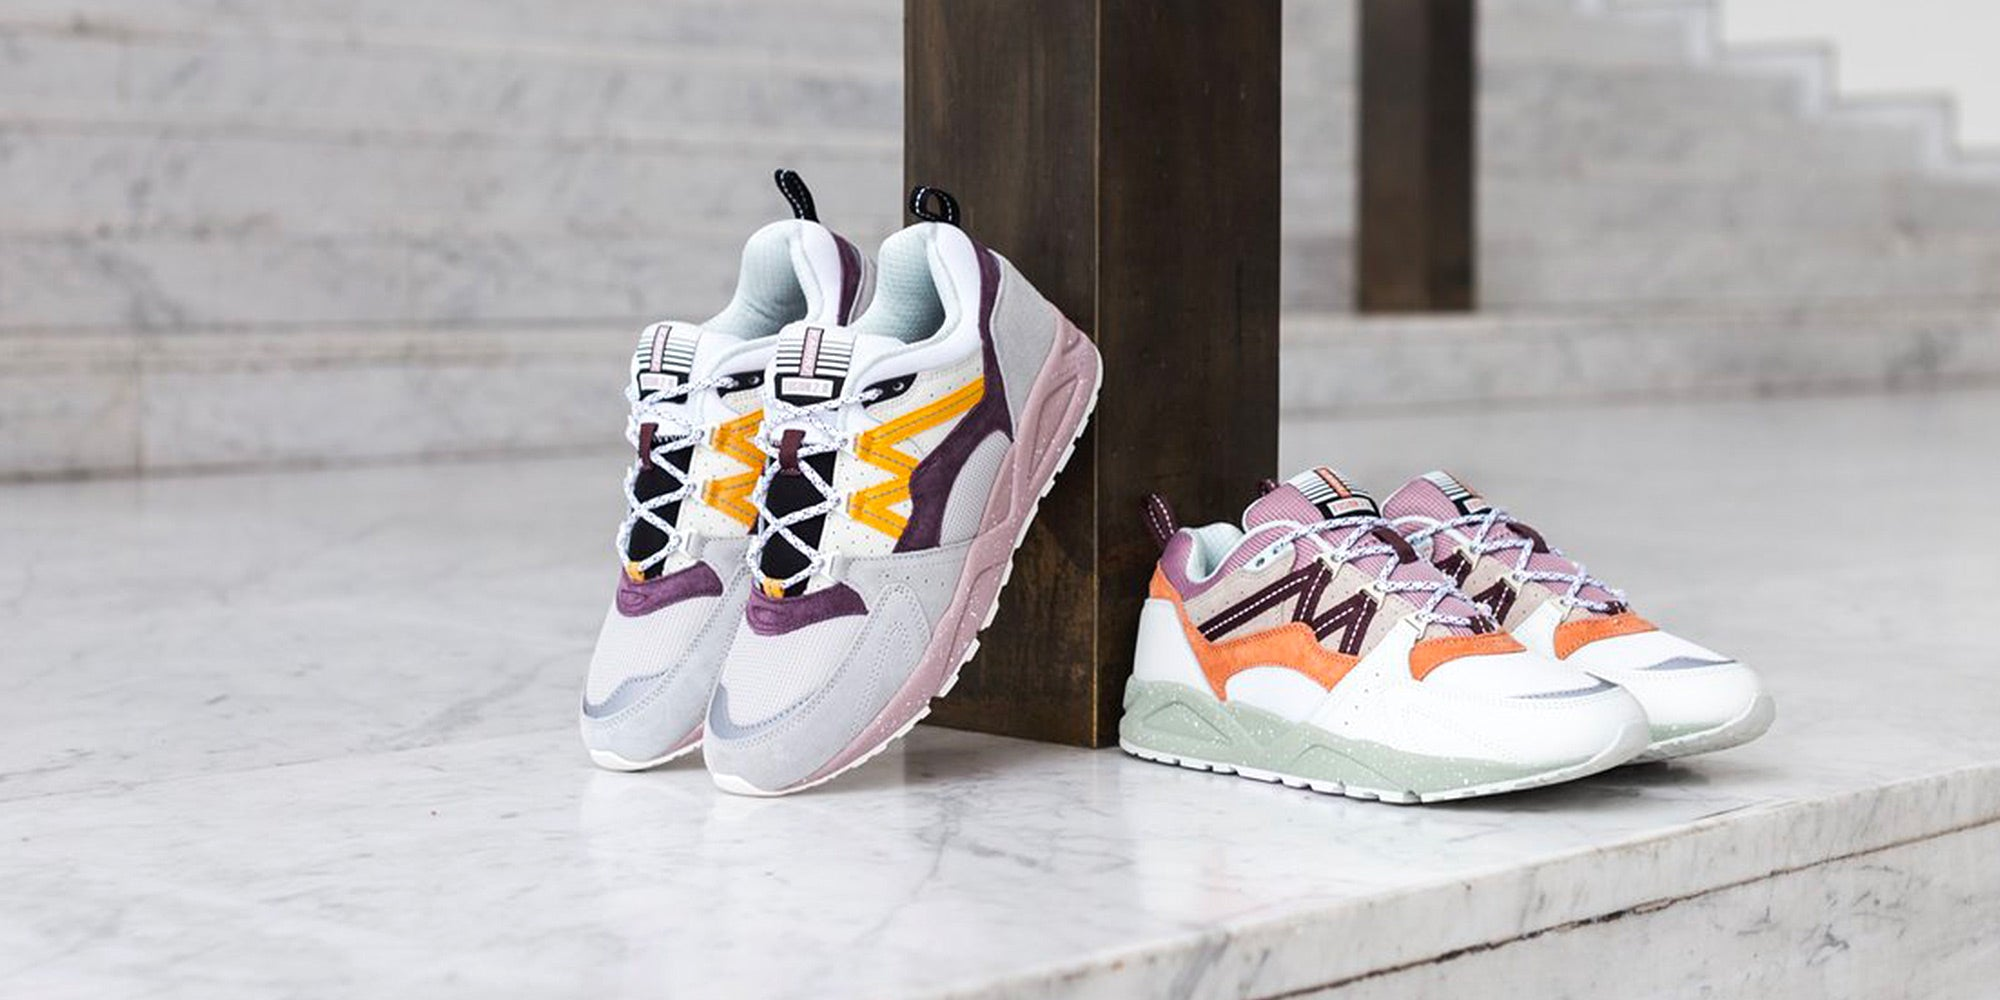 Karhu Fusion 2.0 Speckled Pack Disponible à Milk Store Nantes.